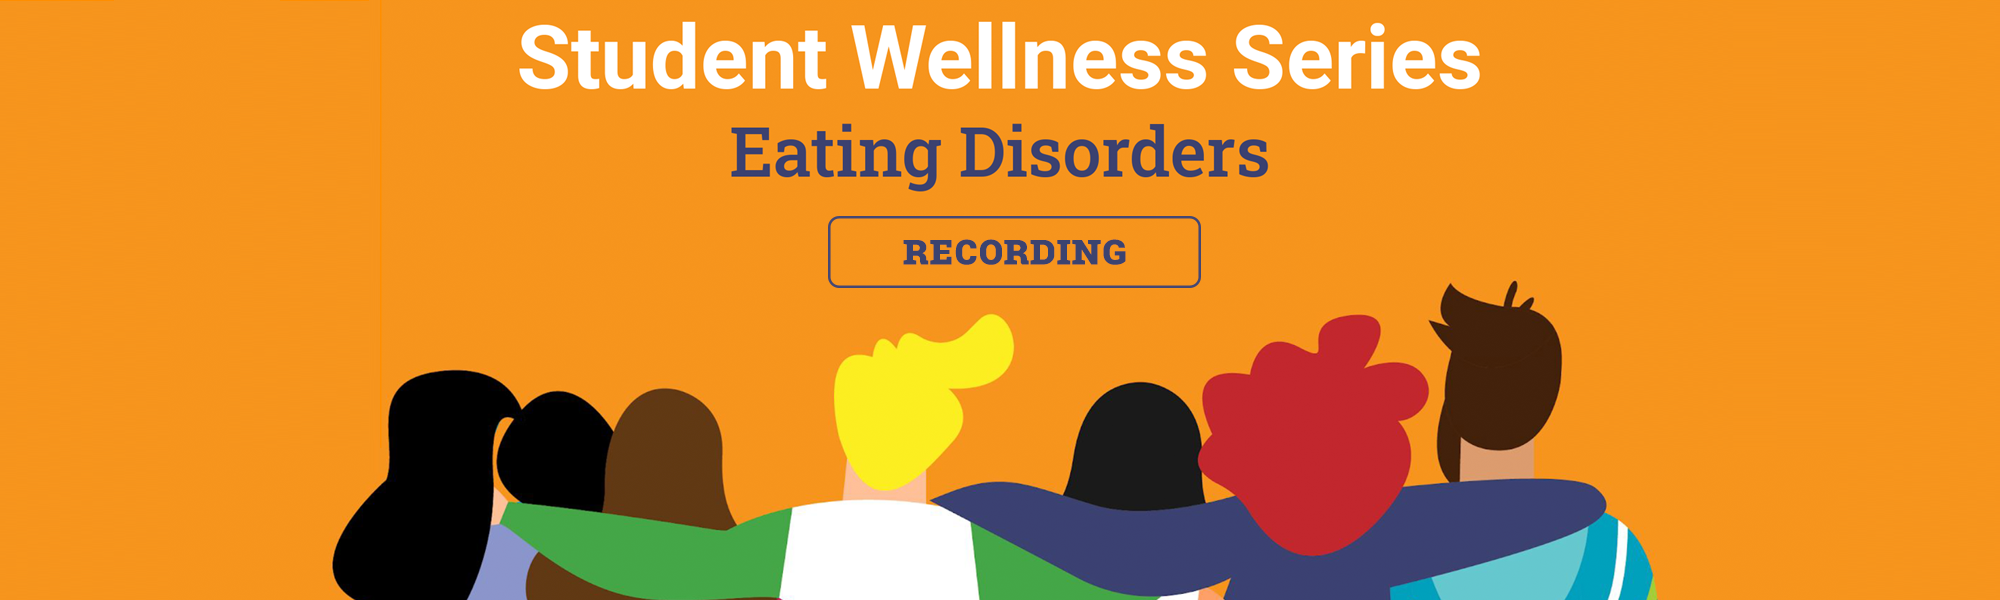 Student Wellness Series - Eating Disorders Recording